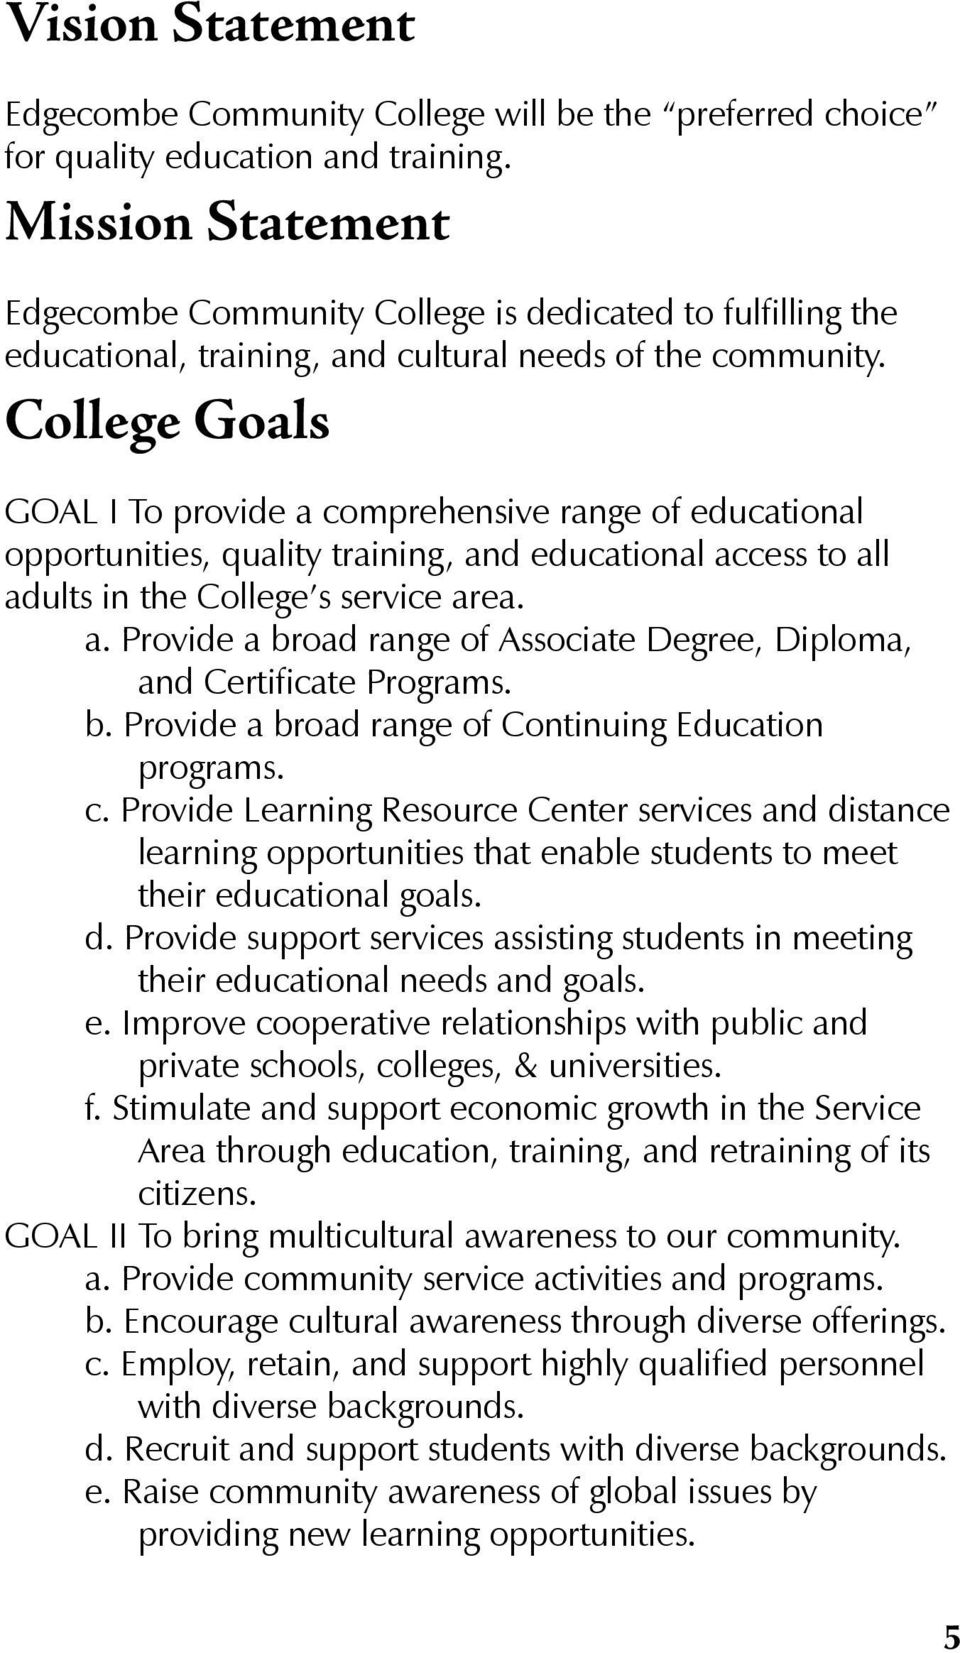 College Goals GOAL I To provide a comprehensive range of educational opportunities, quality training, and educational access to all adults in the College s service area. a. Provide a broad range of Associate Degree, Diploma, and Certificate Programs.